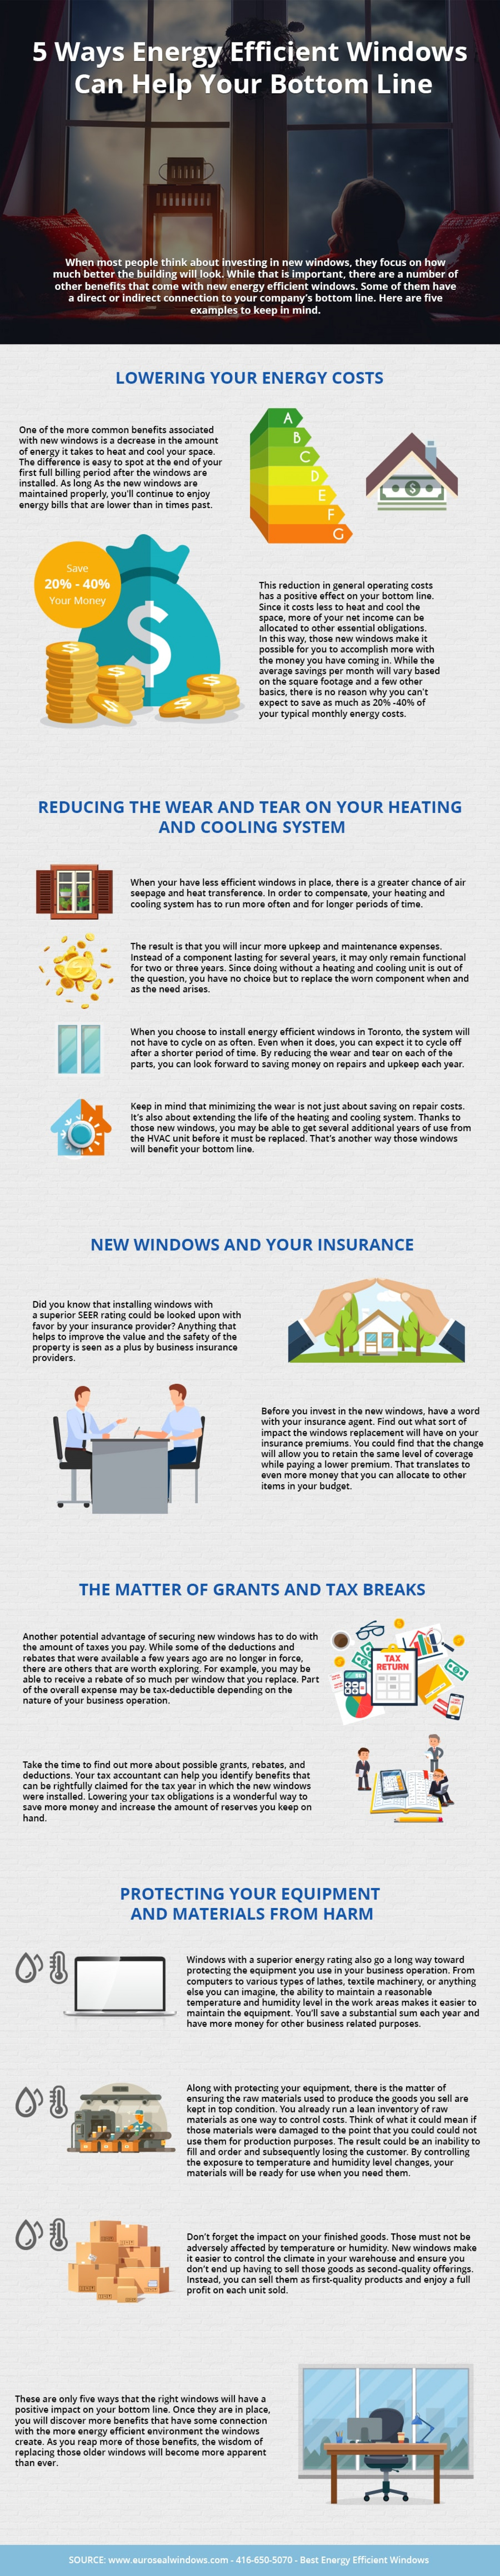 5 Ways Energy Efficient Windows Can Help Your Bottom Line Infographic